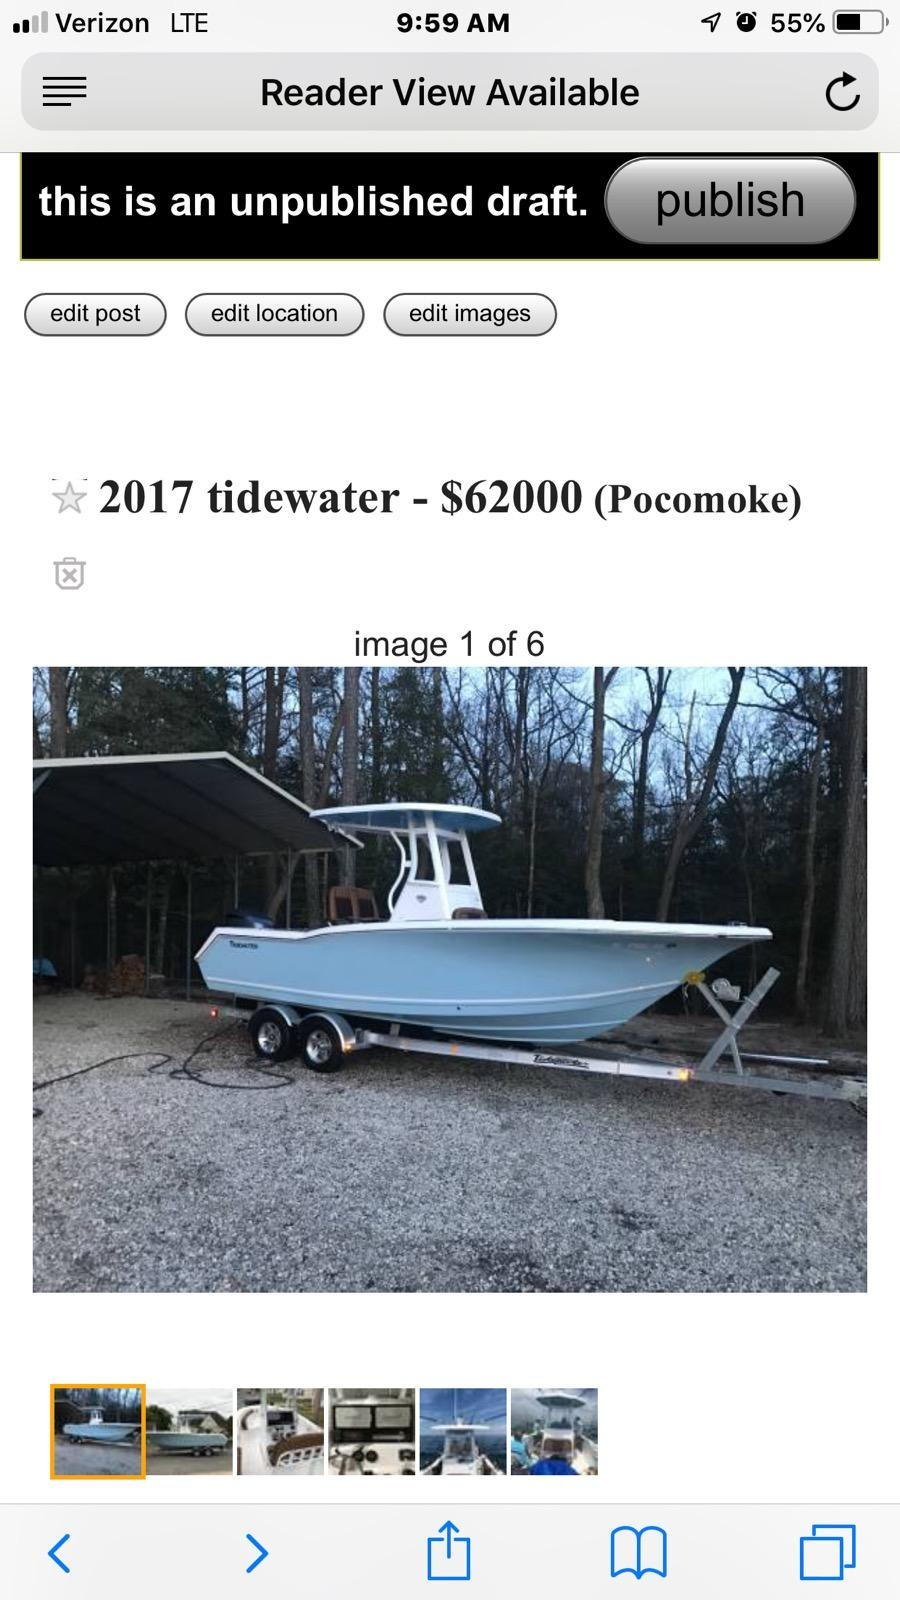 2017 Tide Water 23' - The Hull Truth - Boating and Fishing ...